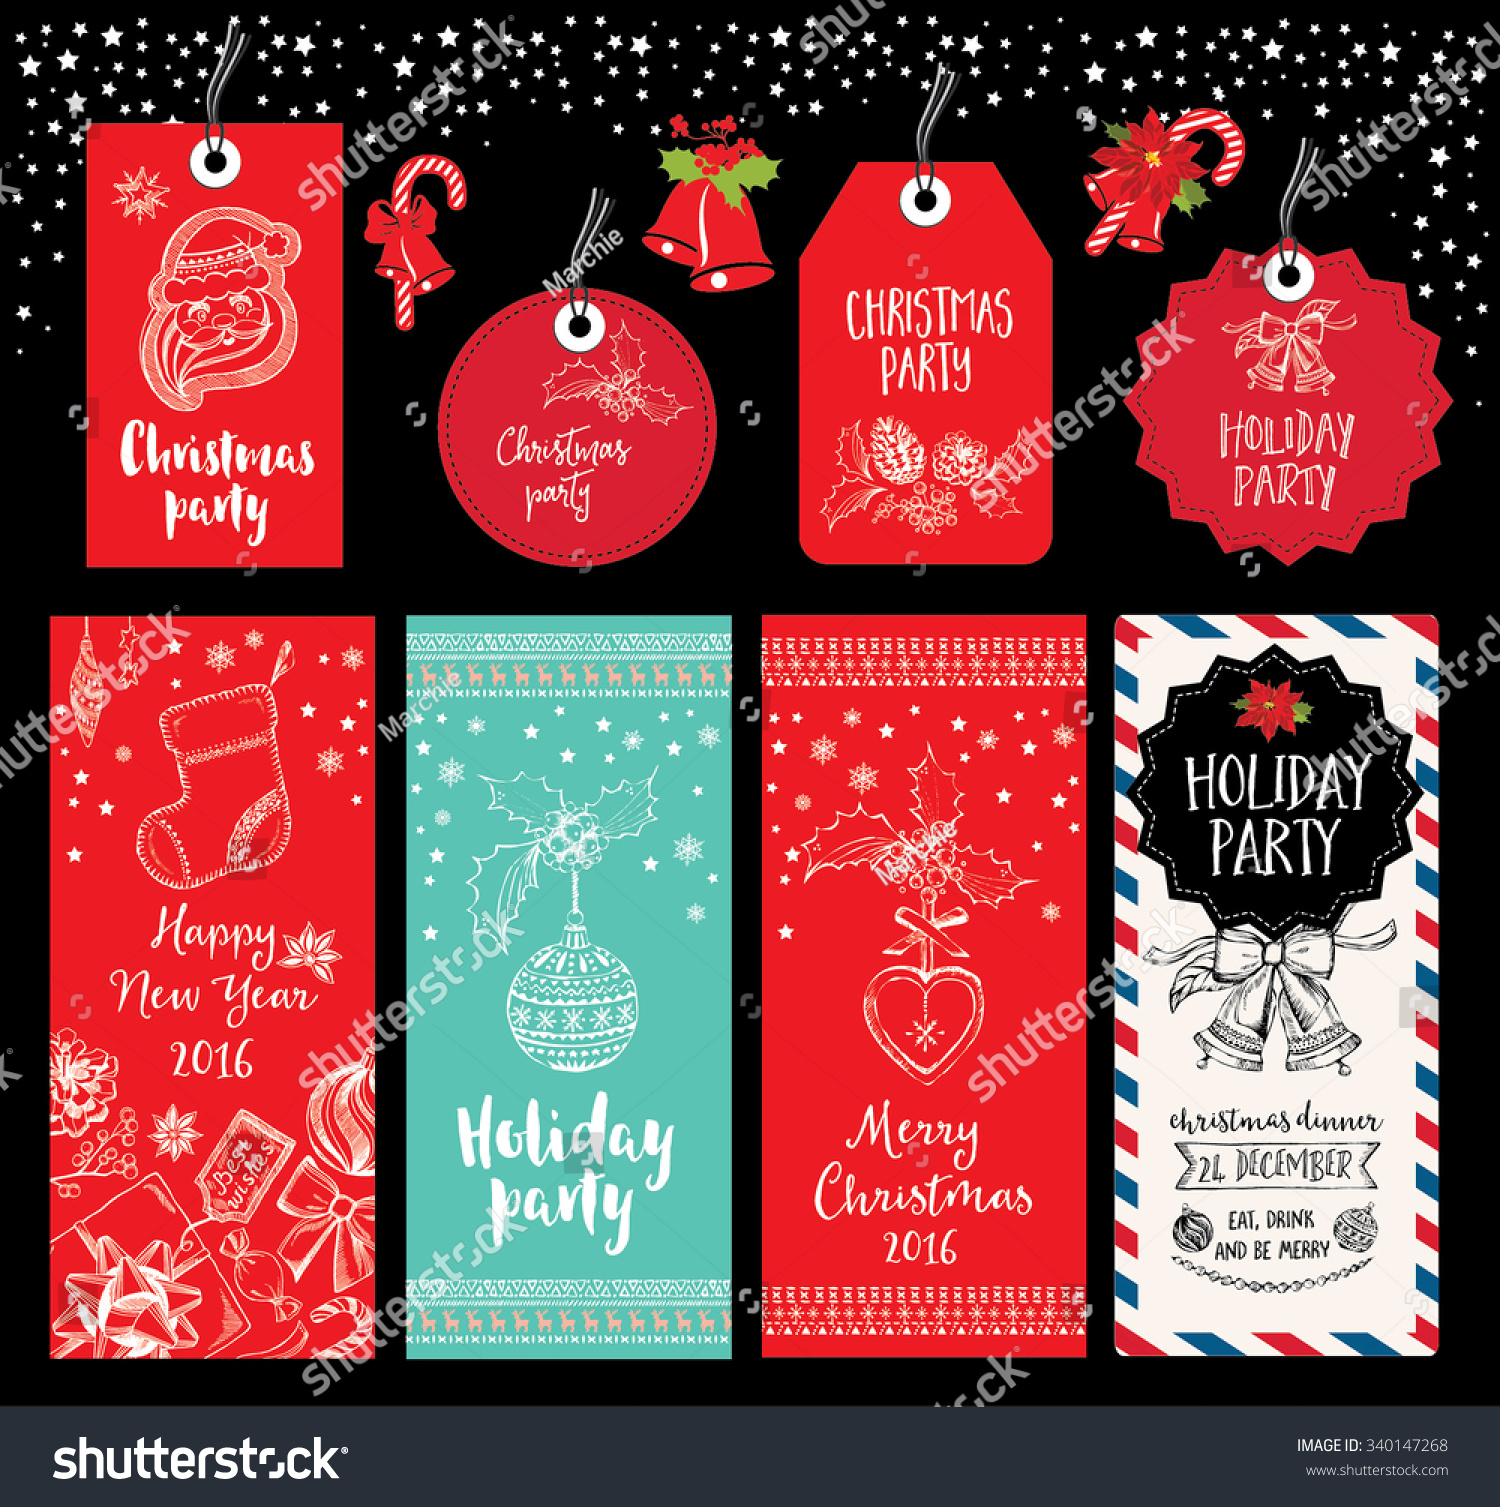 vector christmas party invitation toys holiday stock vector 340147268 shutterstock. Black Bedroom Furniture Sets. Home Design Ideas